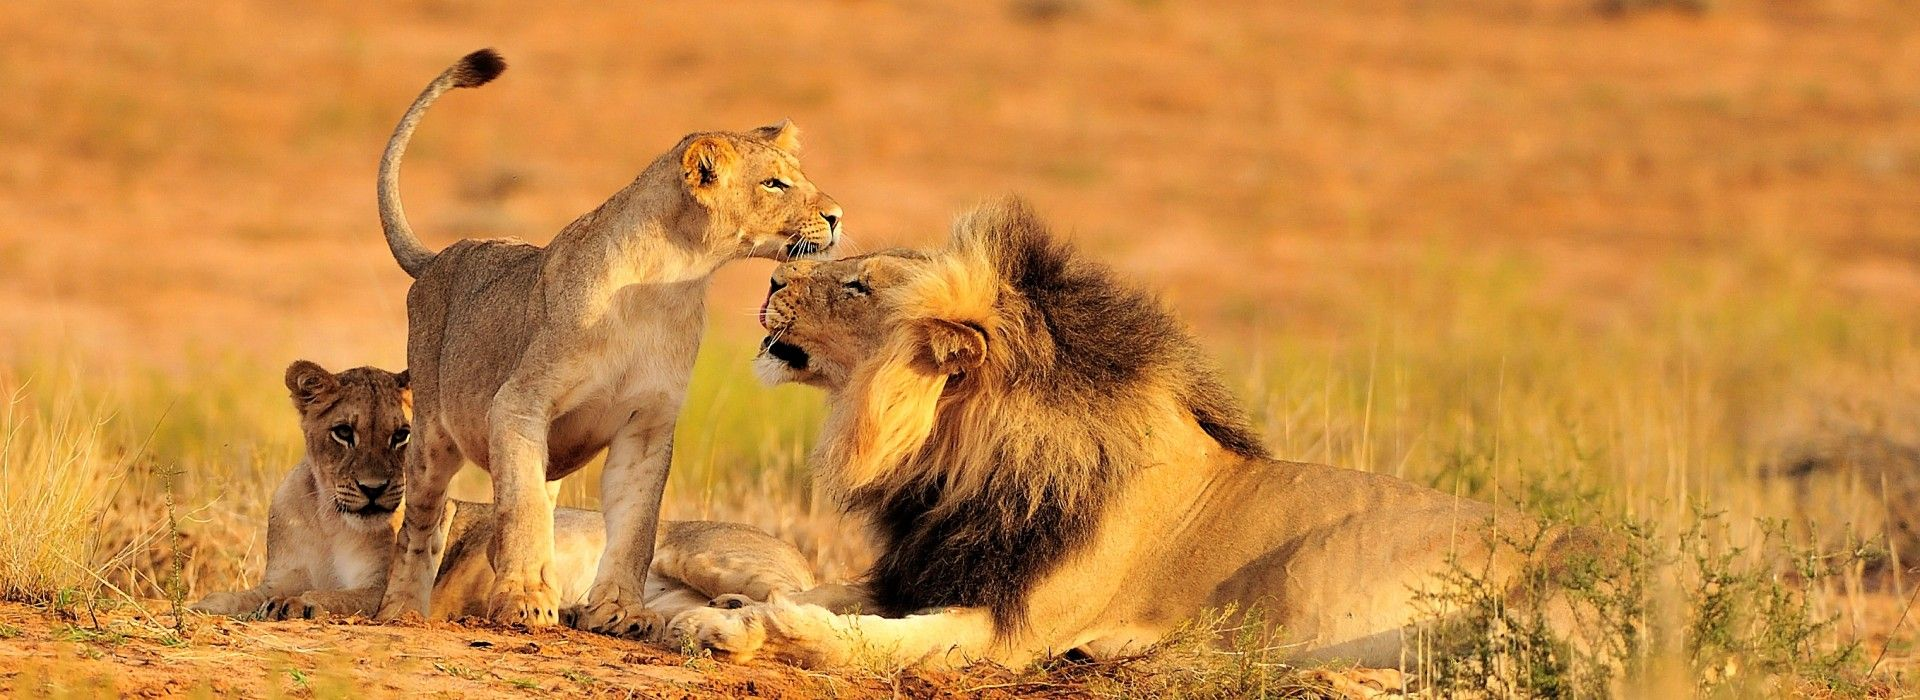 Getaways and short breaks Tours in South Africa